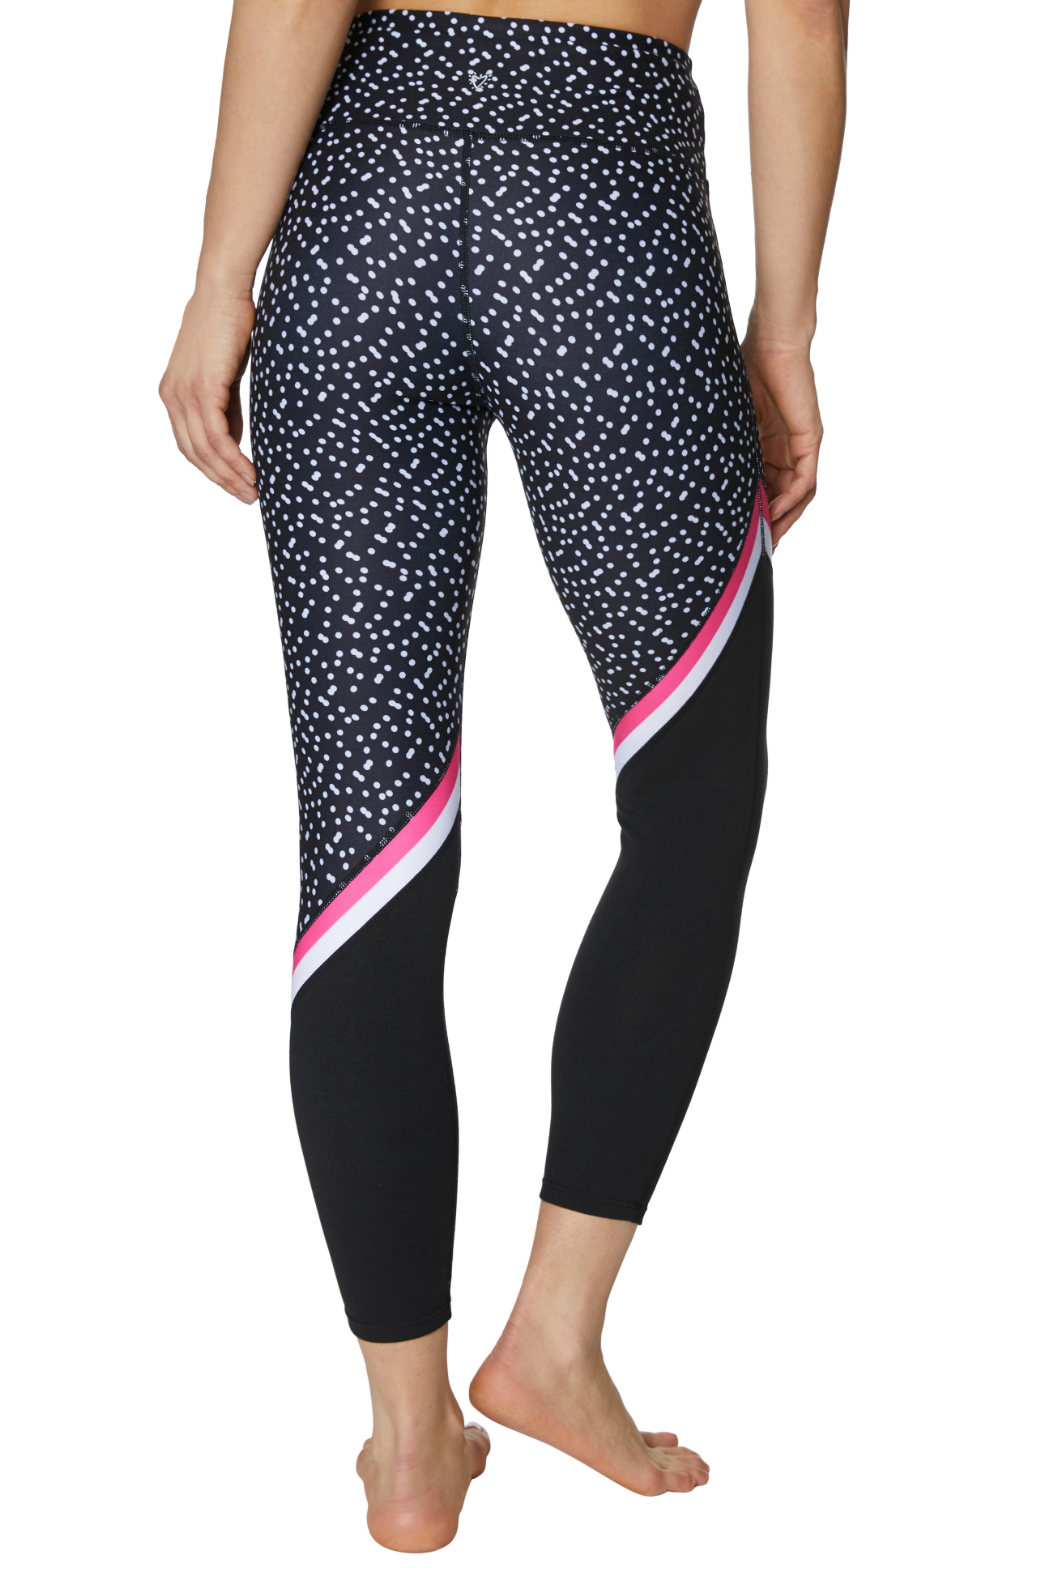 Betsey Johnson Diagonal Colorblock Printed 7/8 Legging - Side Cropped Image